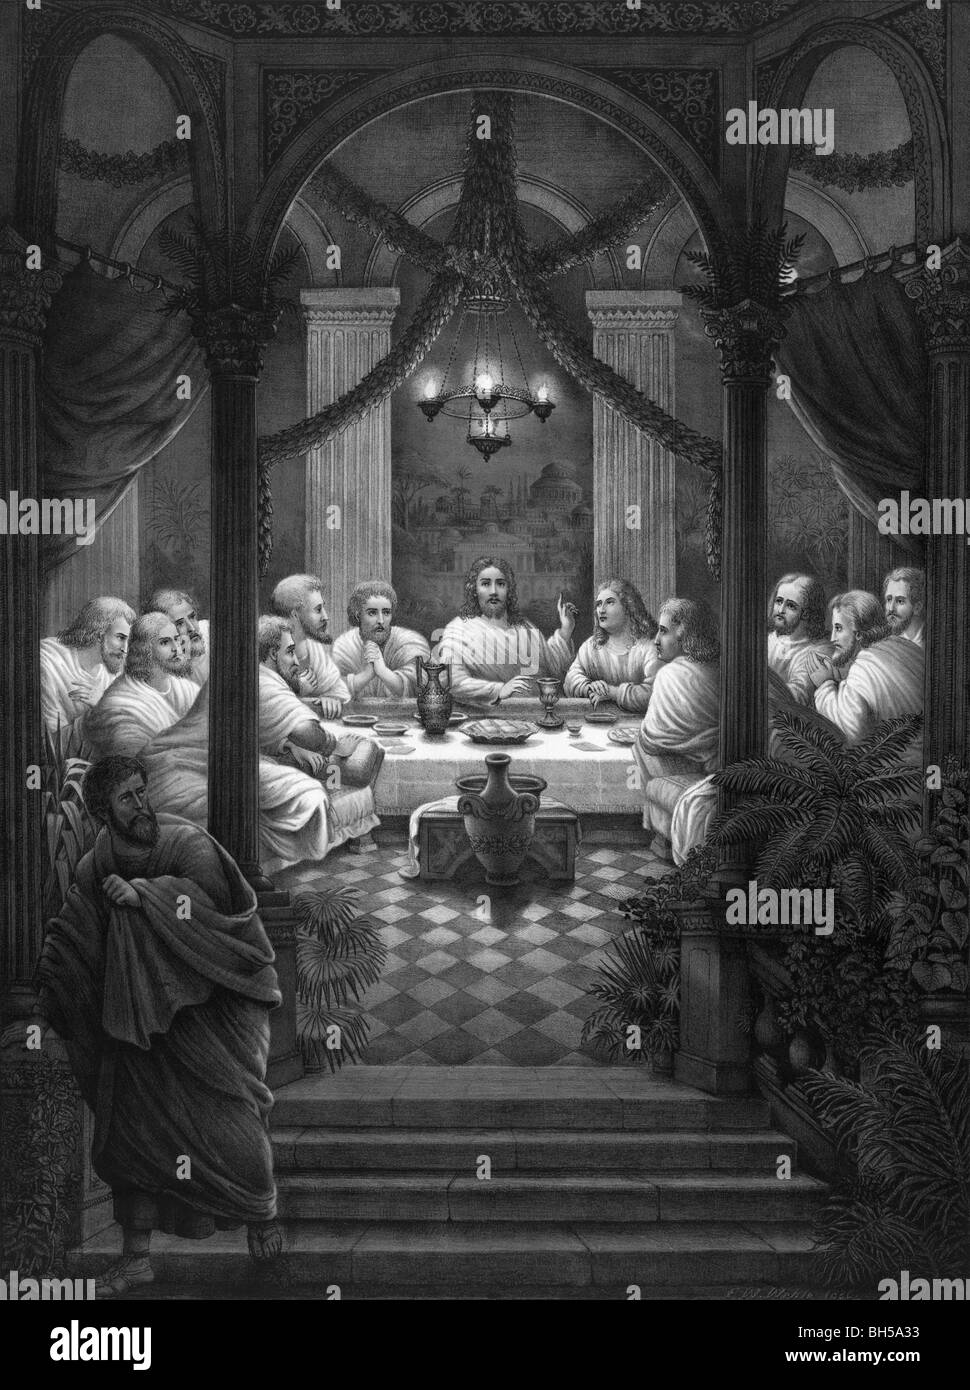 Print Circa 1886 Showing The Last Supper Of Jesus Christ And His